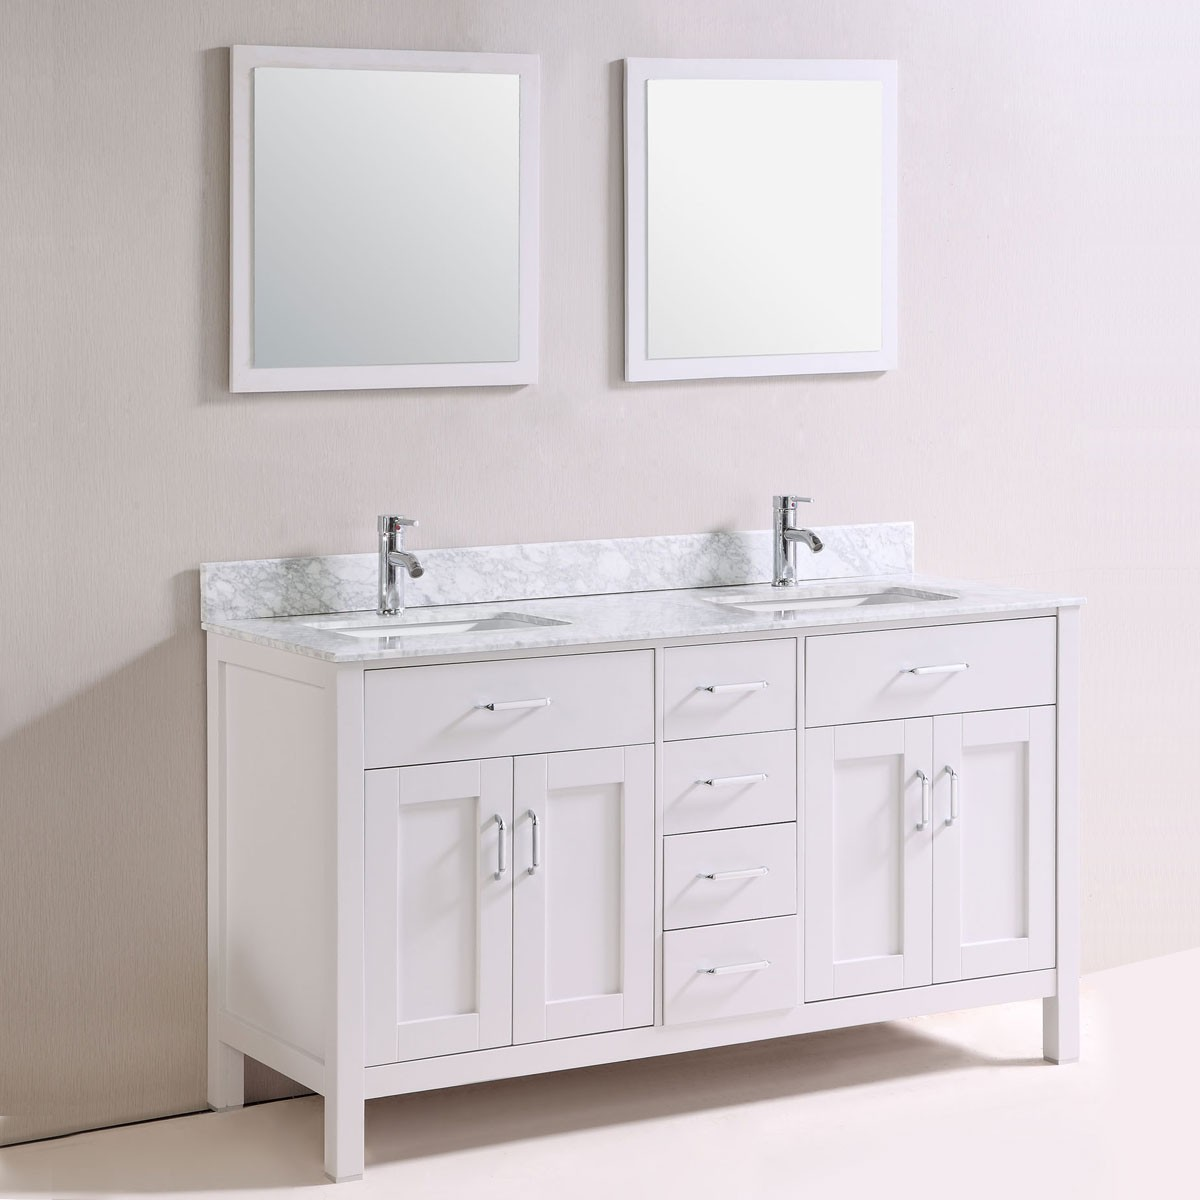 Bathroom vanity mirrors canada